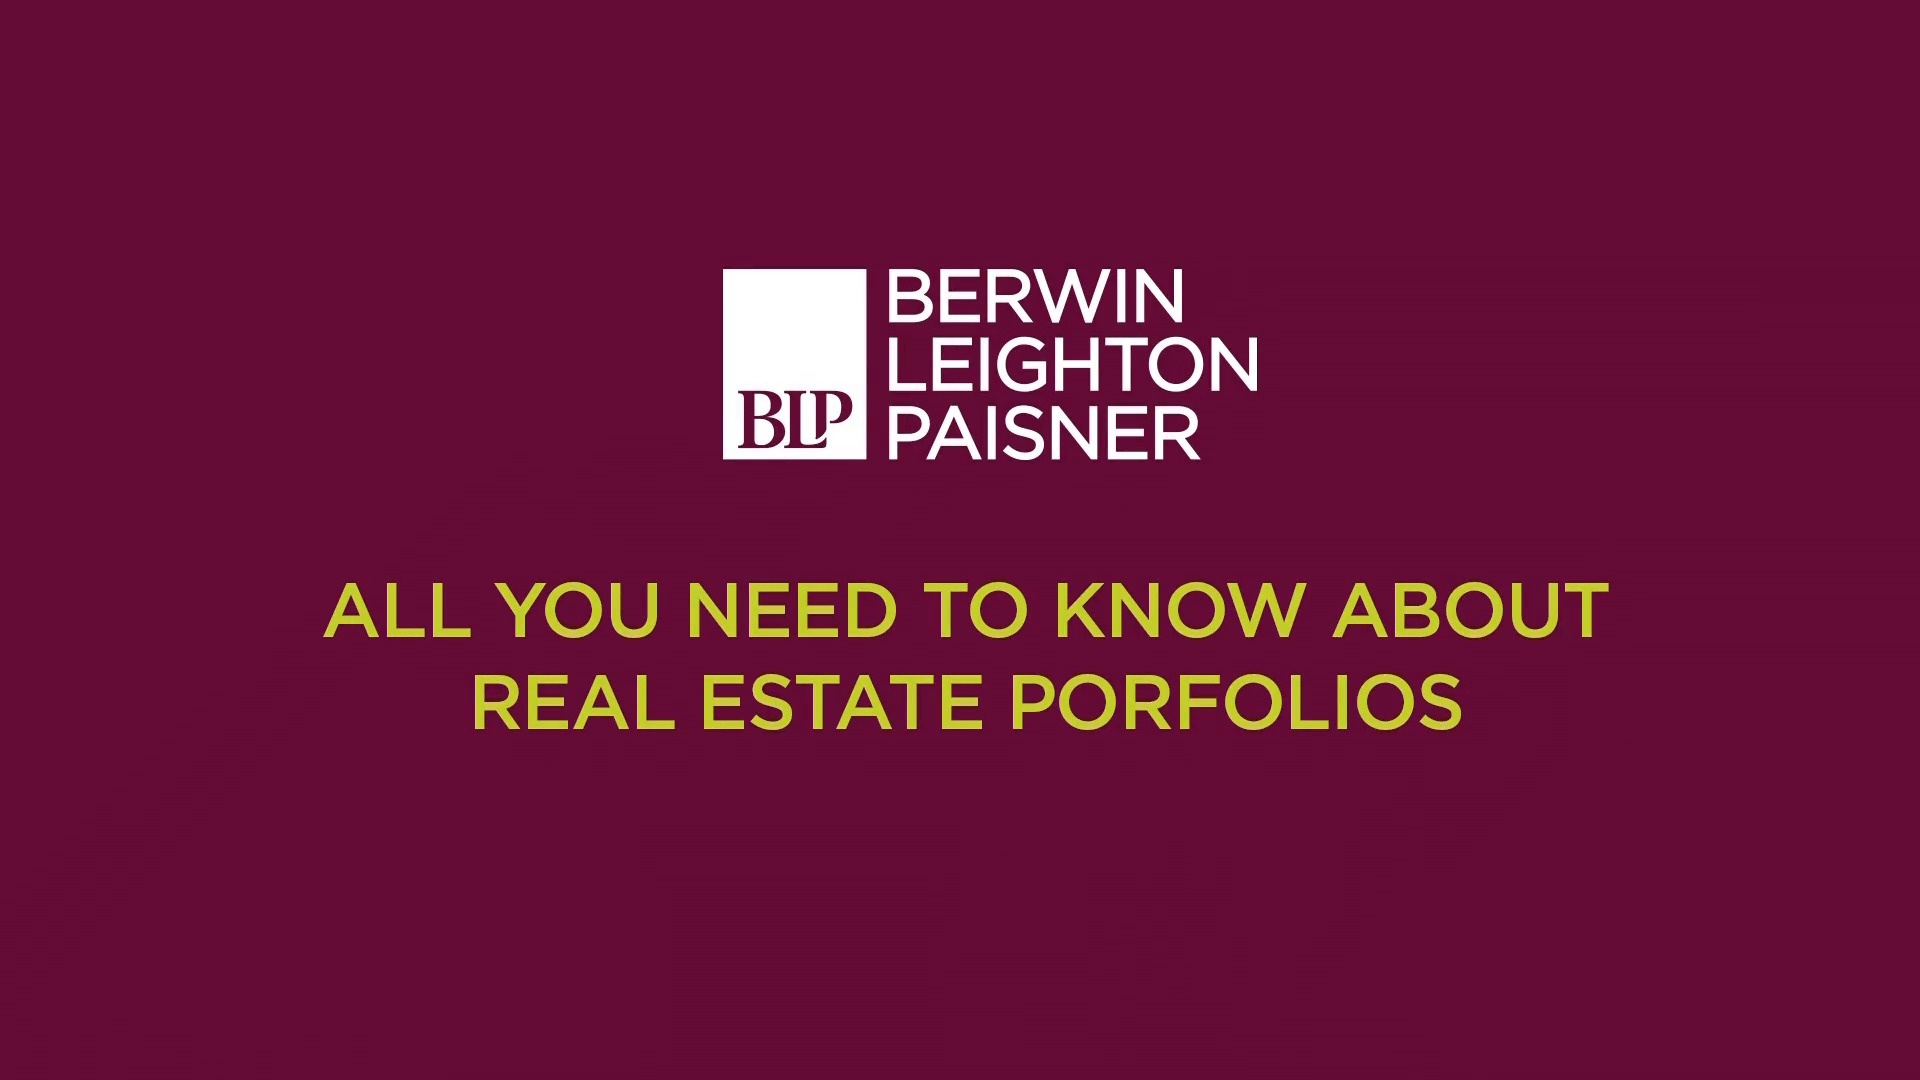 Still image from 'All you need to know about real estate portfolios' video